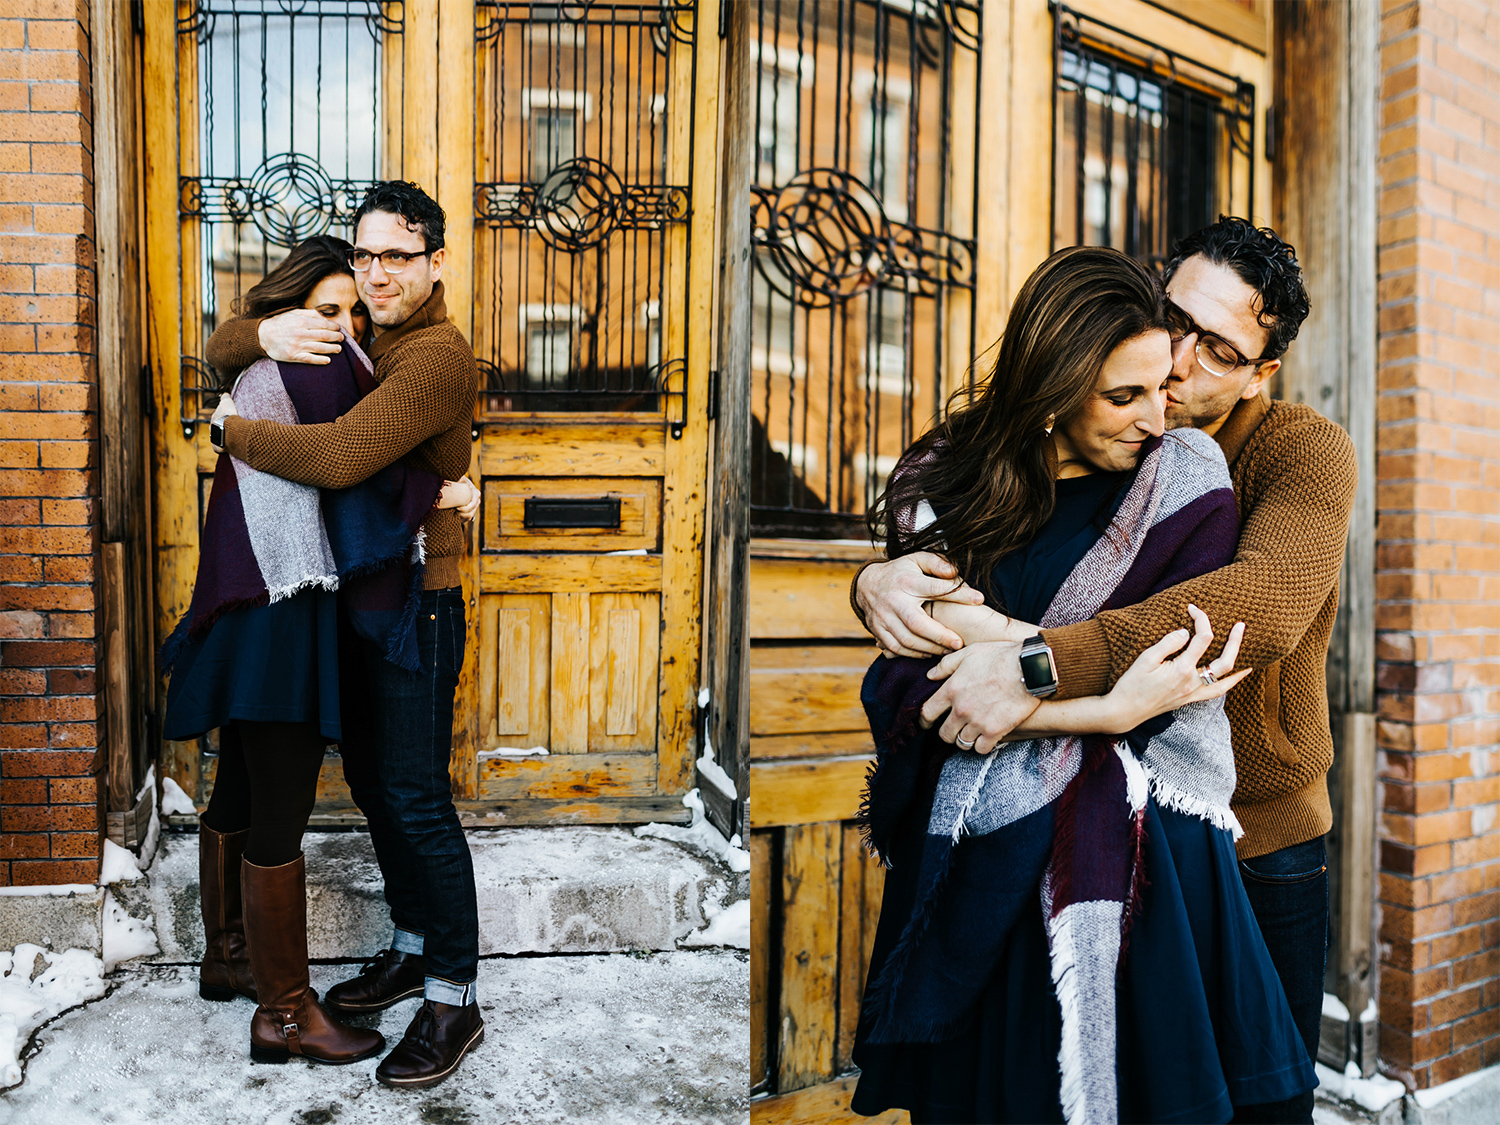 Winter couple session at wm. mulherin's sons